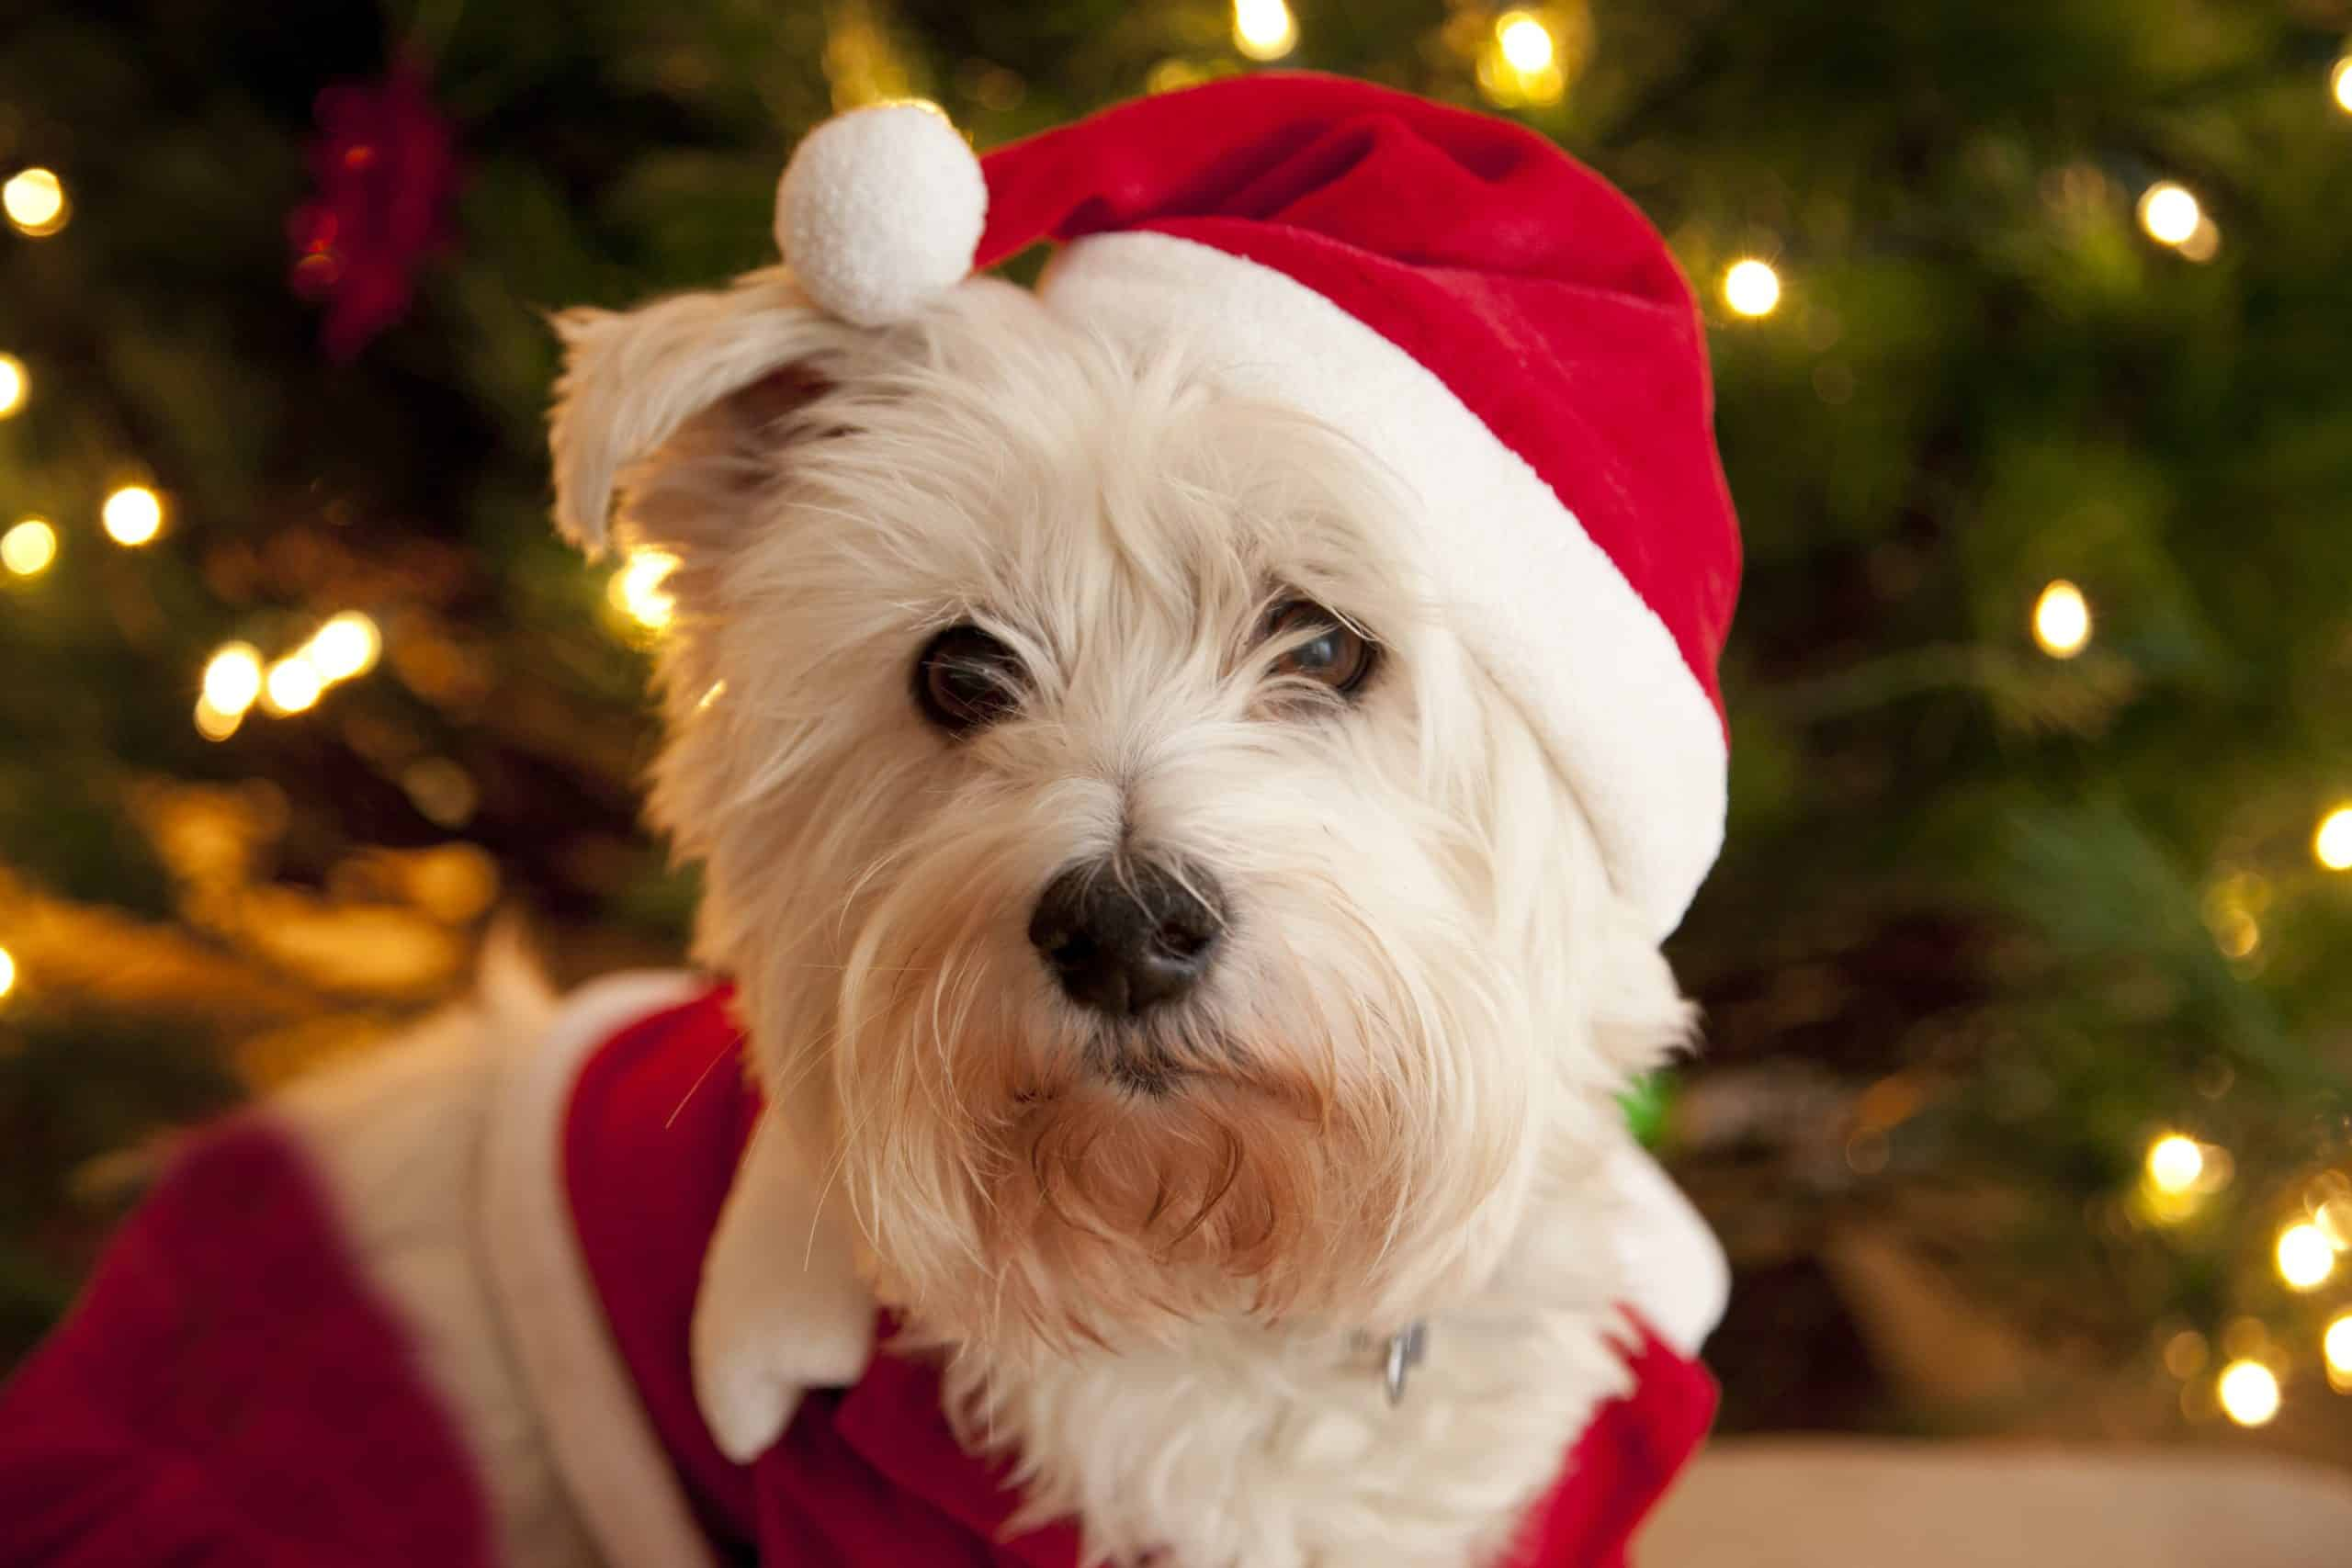 Cute terrier wears a Santa outfit. When traveling with your dog, it's helpful to pack some of their home comforts to keep your pup calm, compliant, and happy.